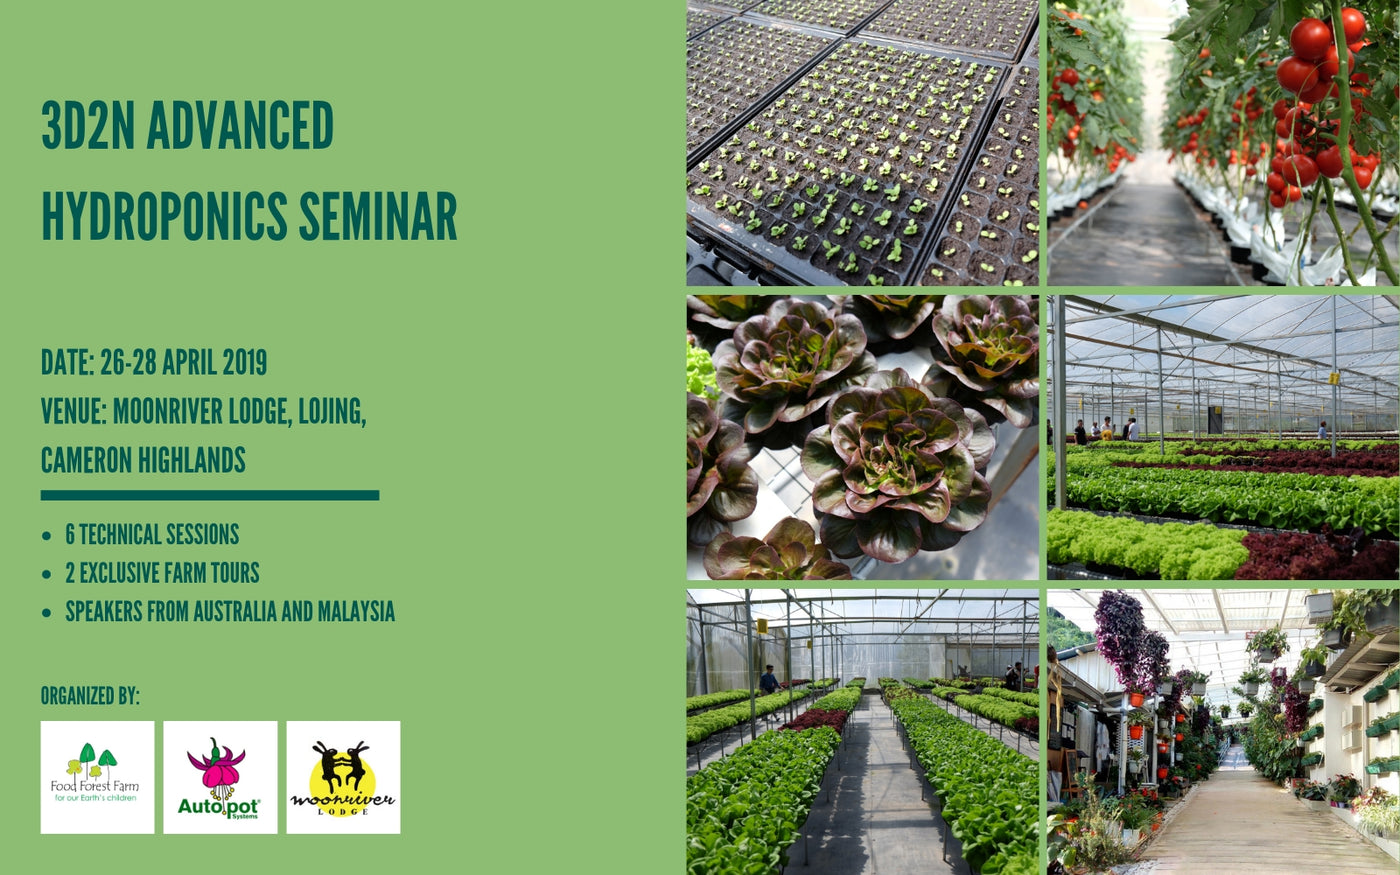 Advanced Hydroponics seminar